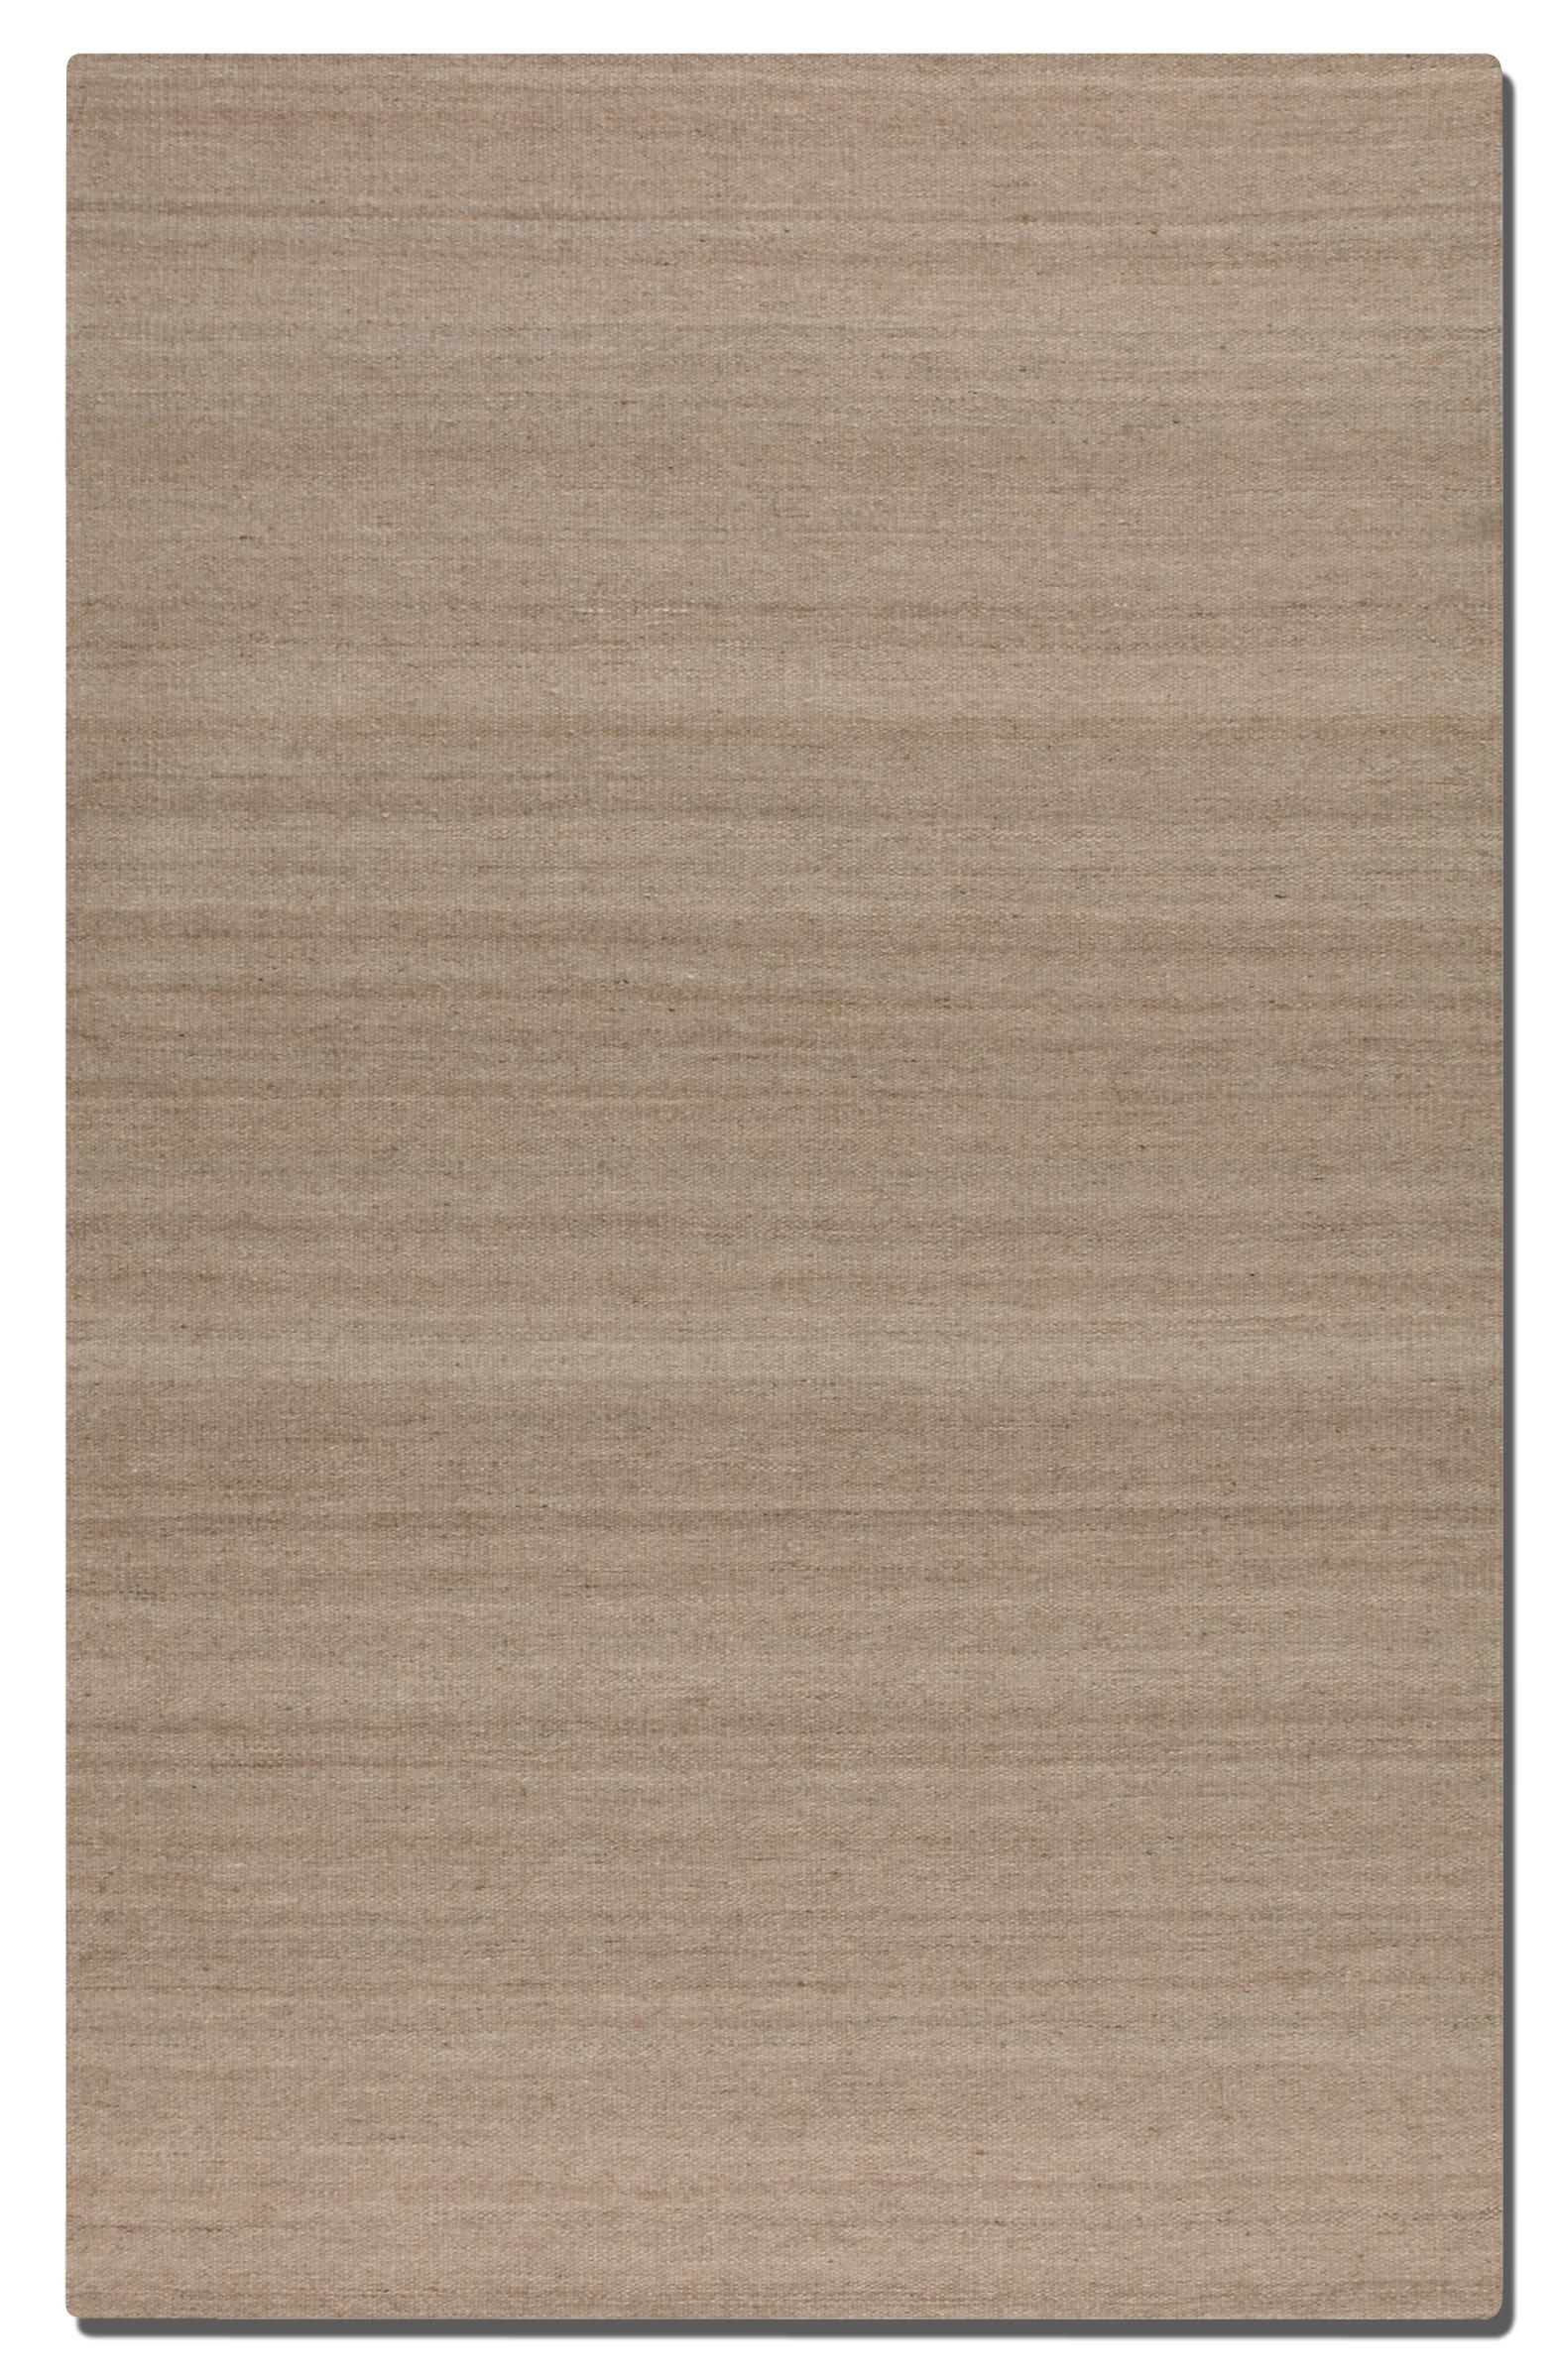 Uttermost Rugs Wellington 9 X 12  - Item Number: 71006-9